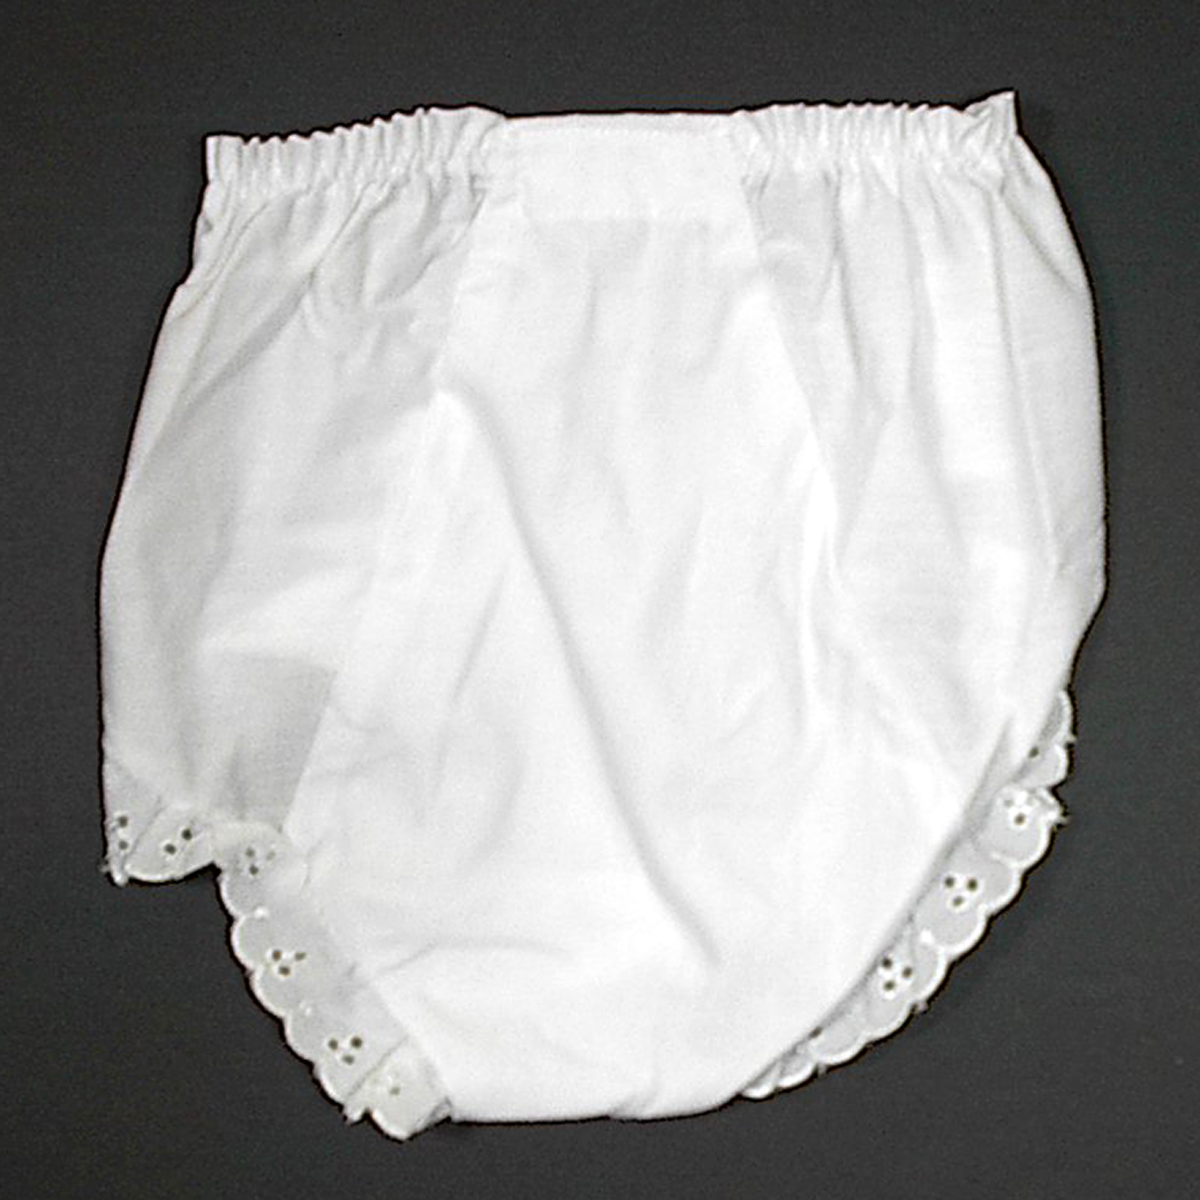 White Baby Diaper Covers Bloomers Embroidery Blank 6 months